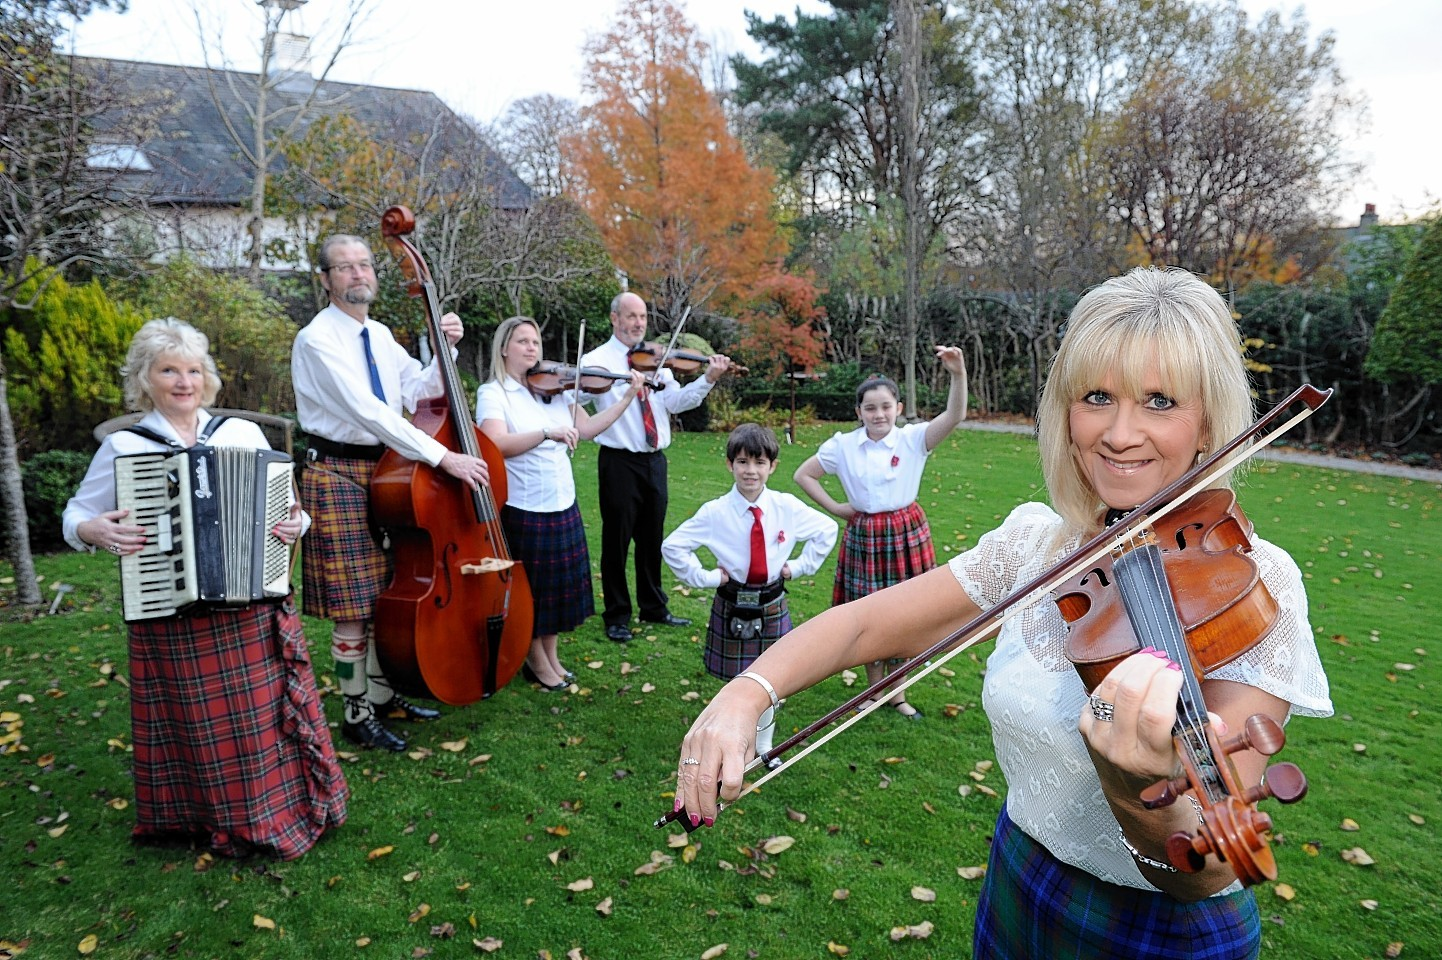 Some of the talented Aberdeen musicians